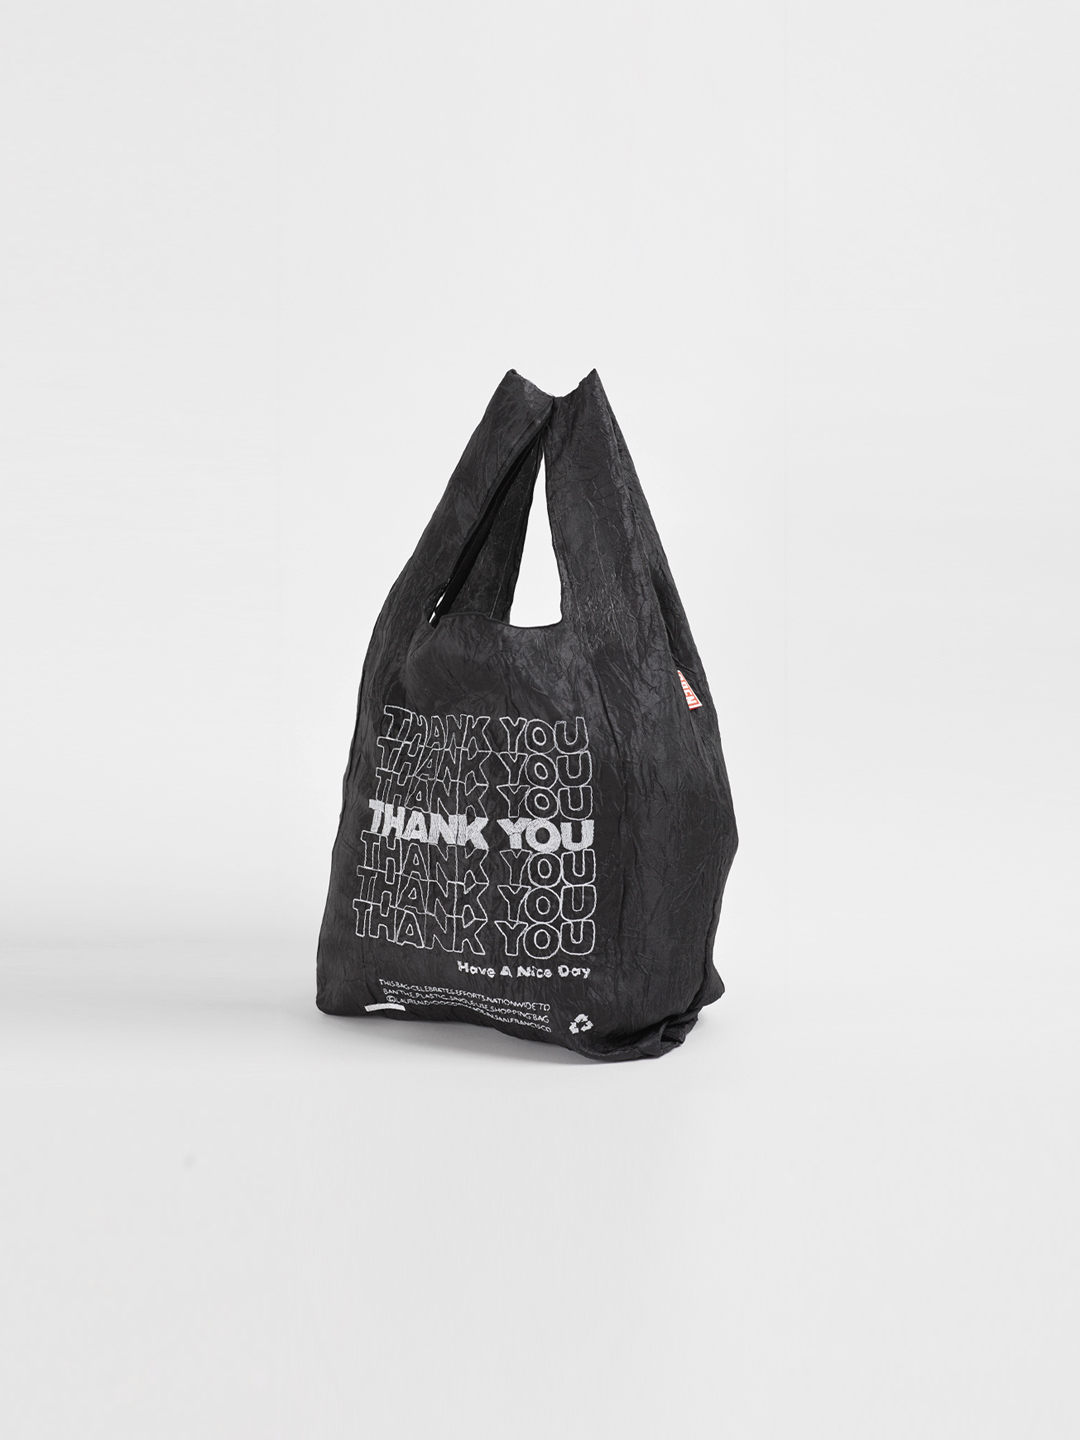 MINI Thank You Tote - Thank You Black【SPECIAL Edition】